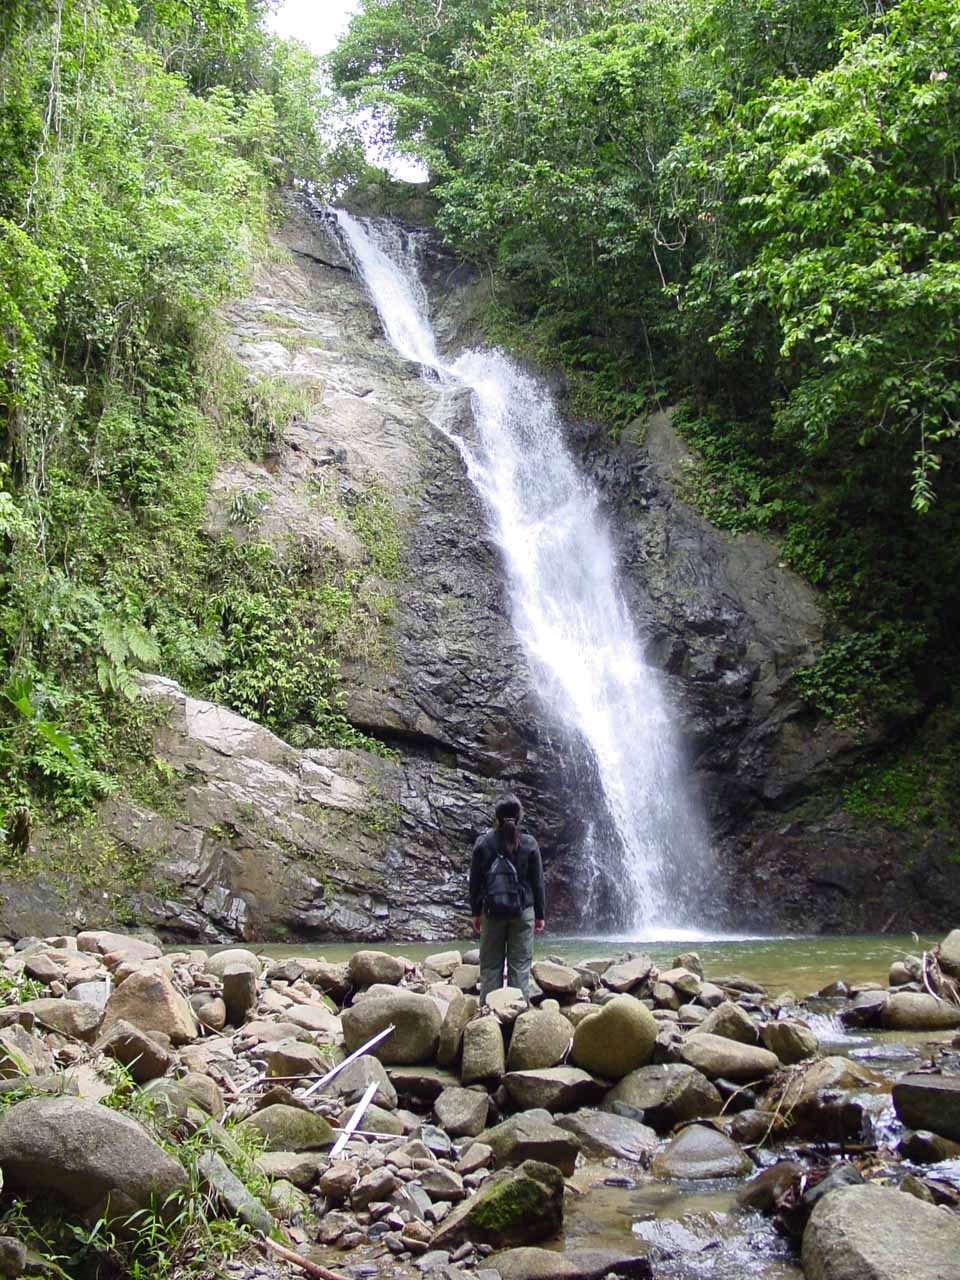 At the Biausevu Waterfall at last